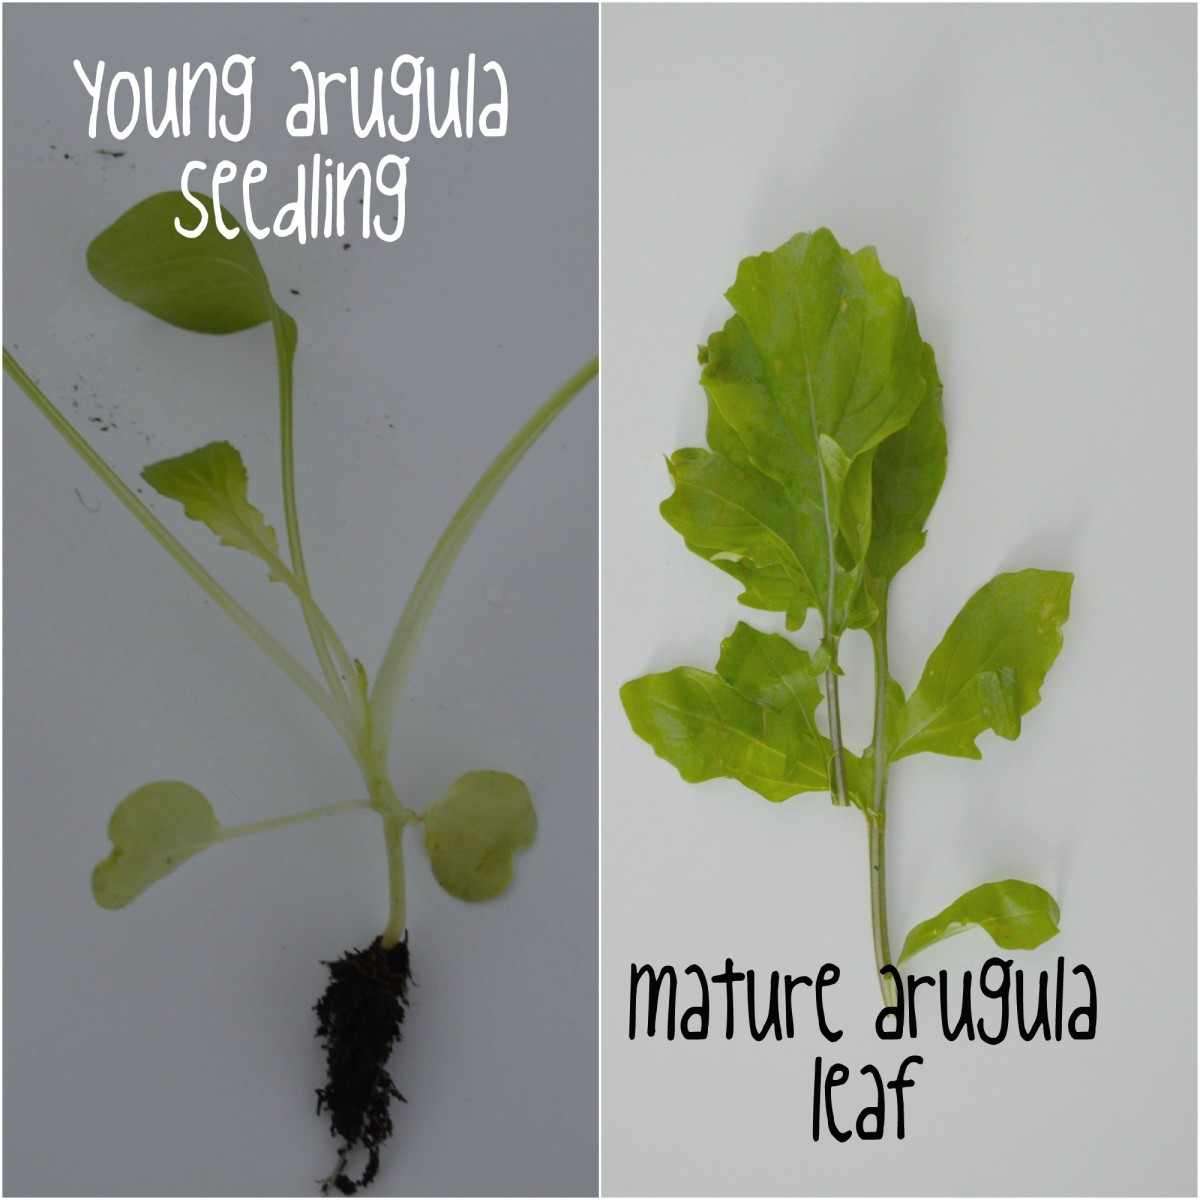 A side-by-side comparison of a young arugula seedling and a mature arugula leaf, which illustrates the round leaves of the young plant versus the lobular, dandelion-leaf shaped mature rocket leaf.